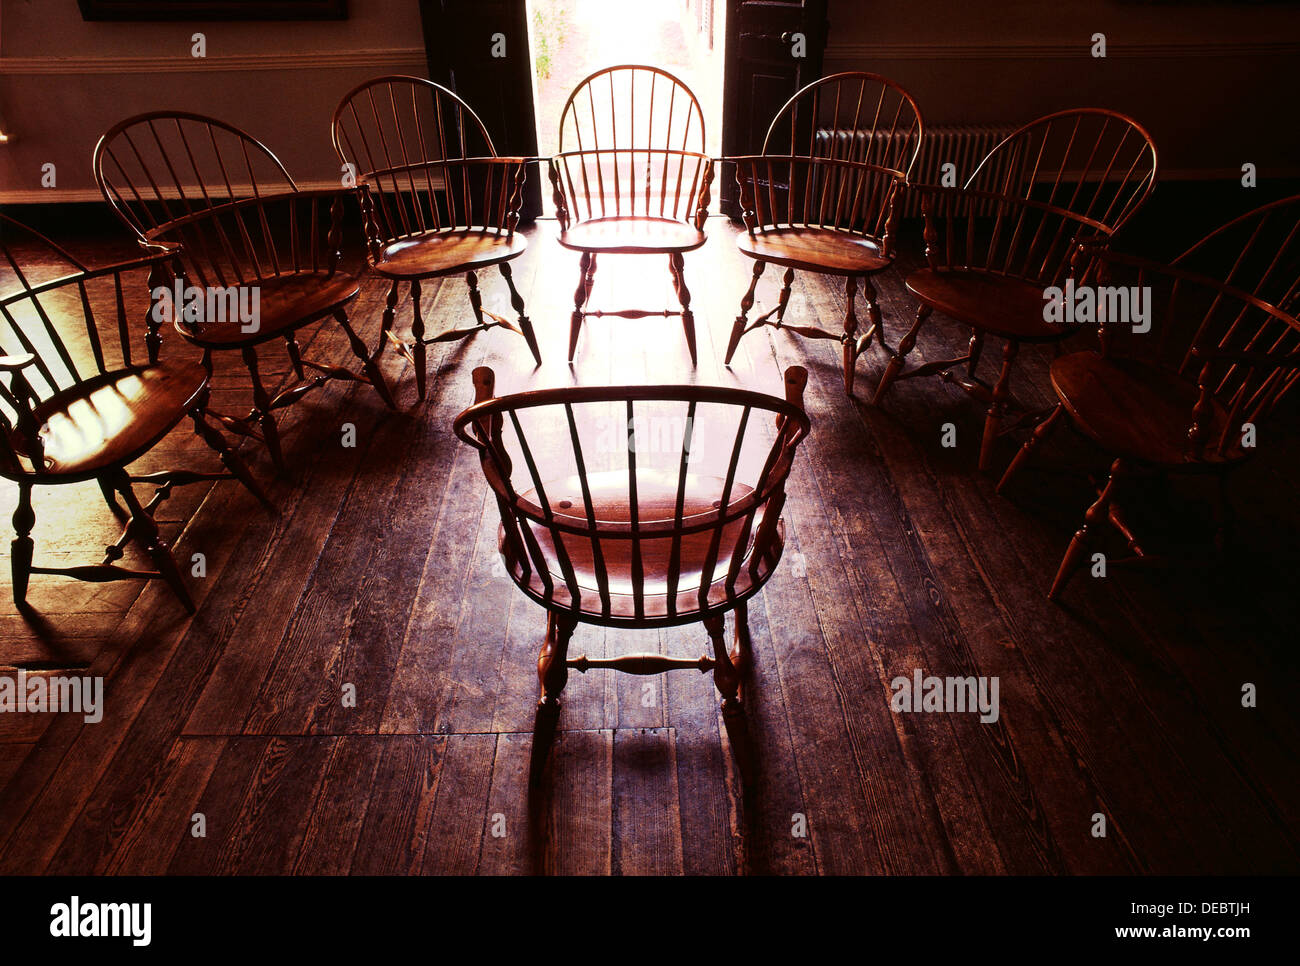 EMPTY CHAIRS IN SEMI CIRCLE   Stock Image